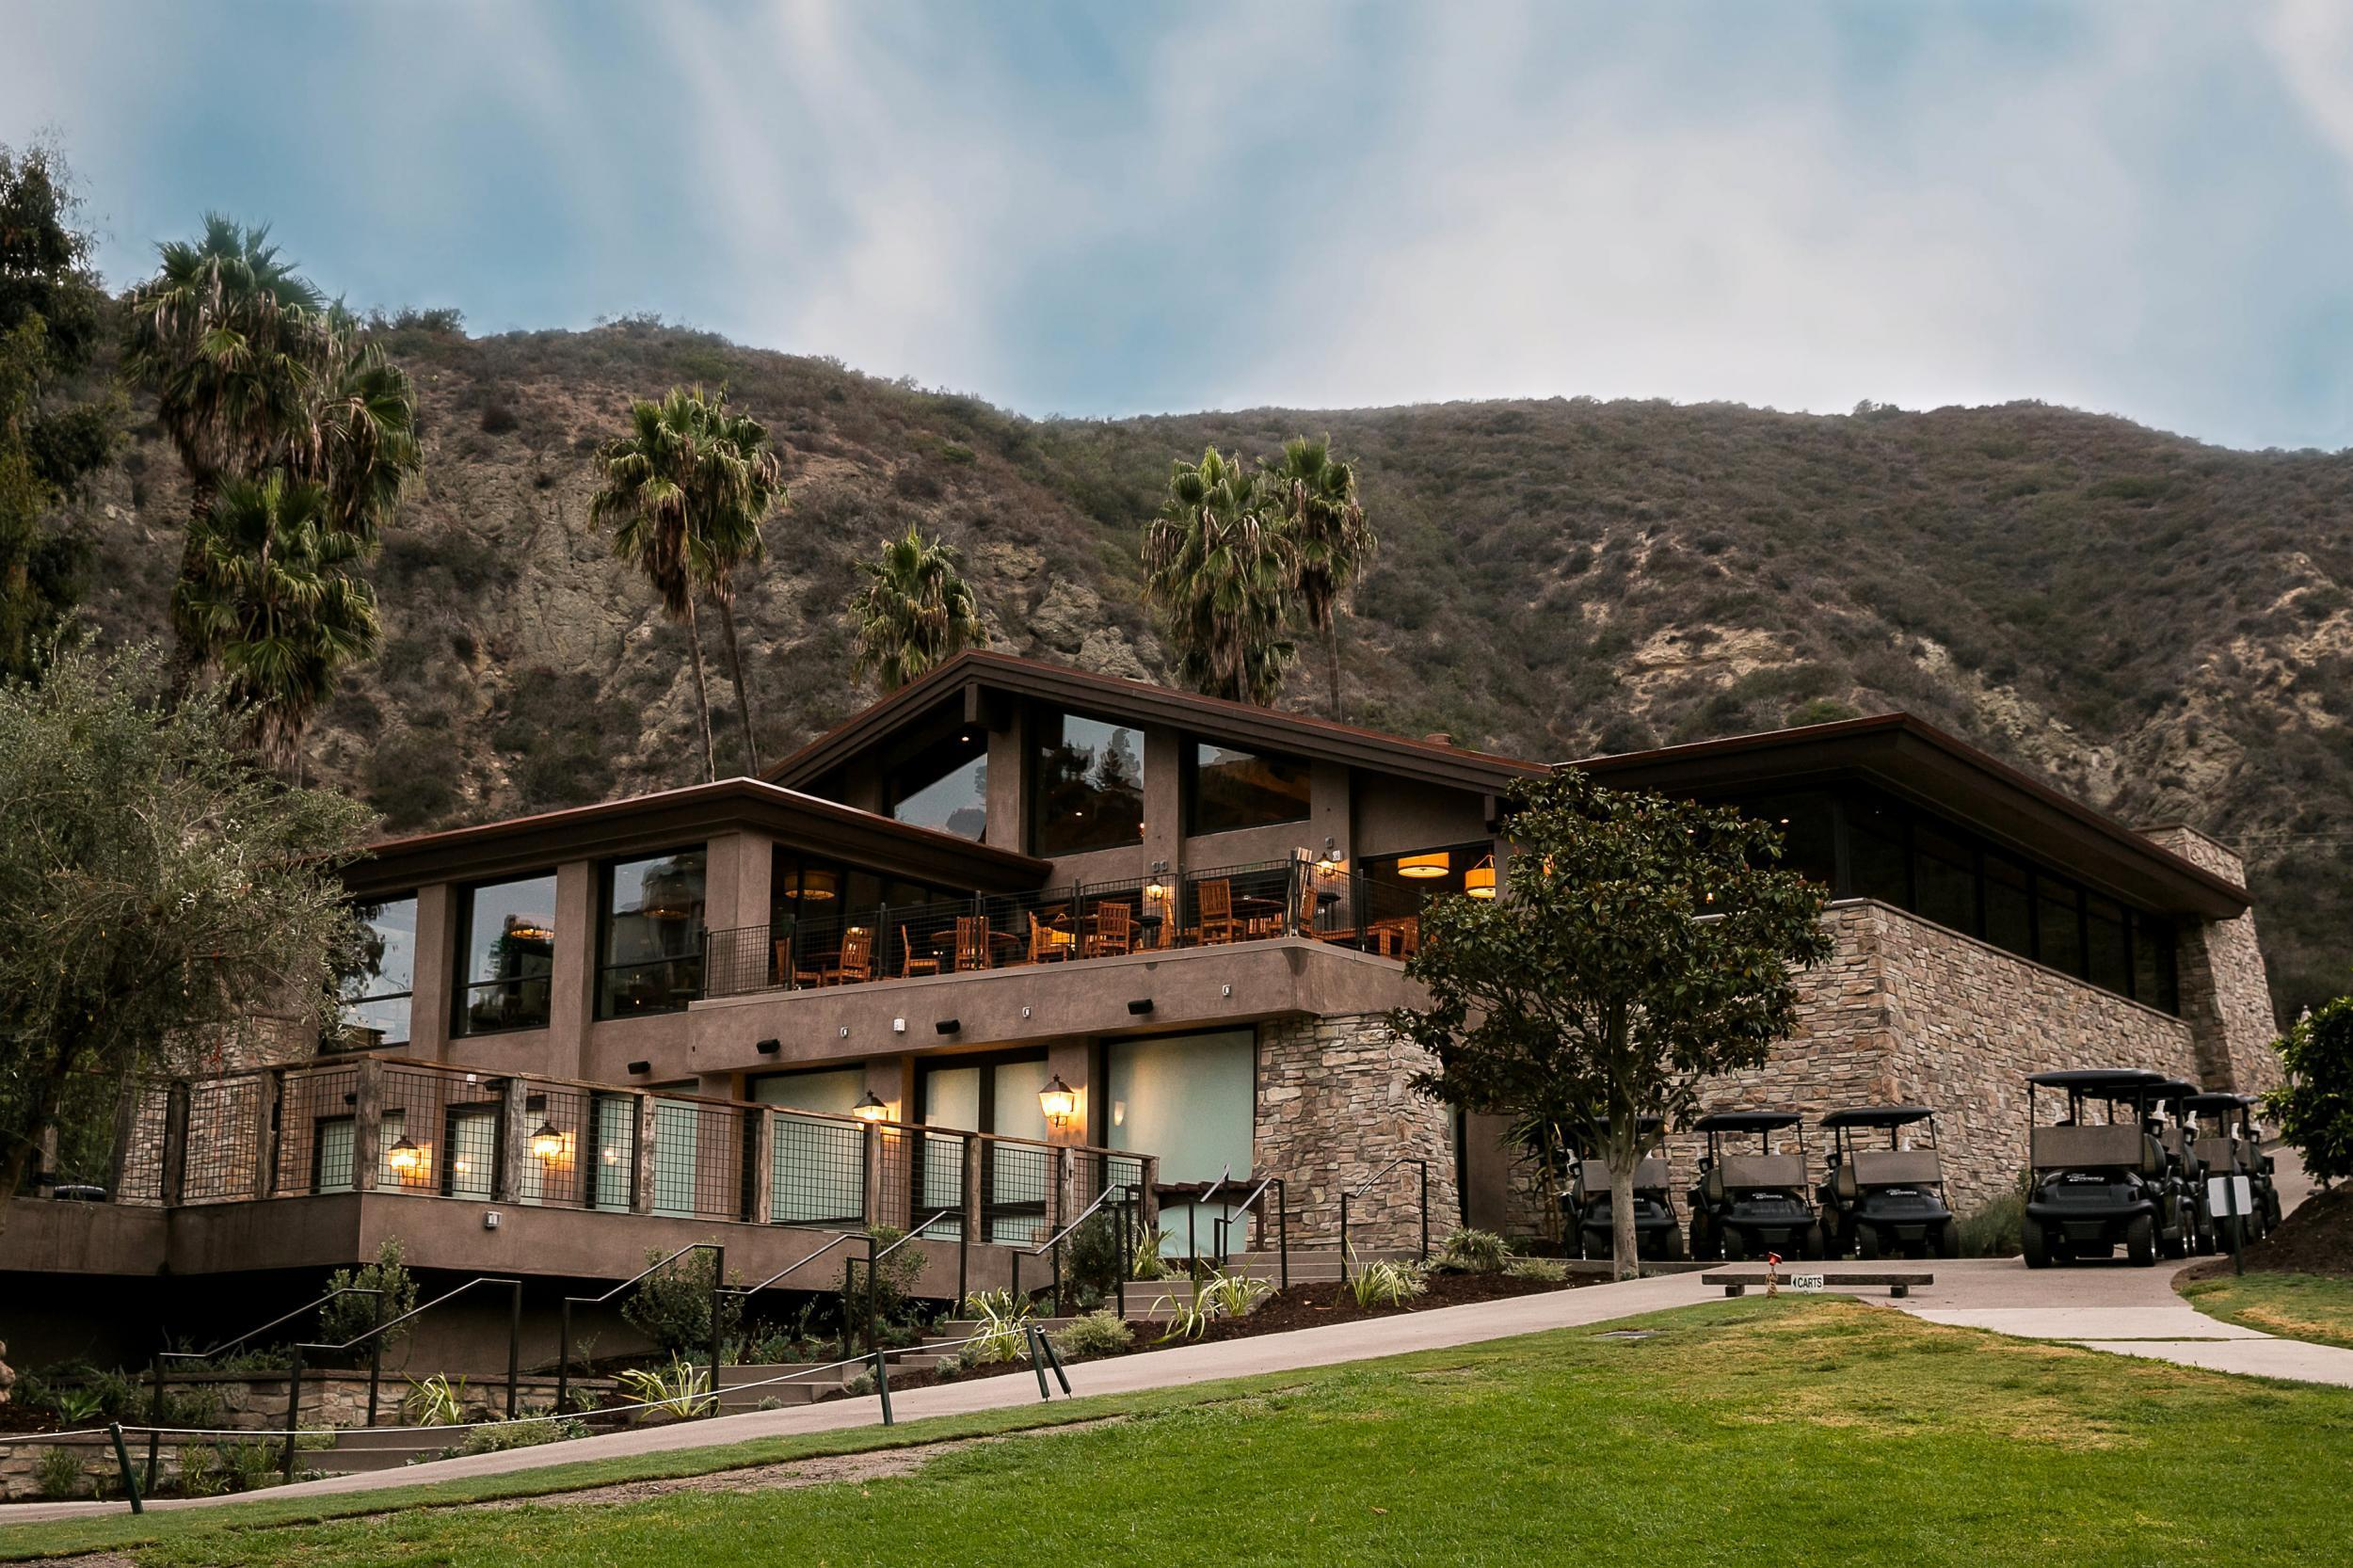 Ranch at laguna beach classic california meets modern for Luxury independent hotels